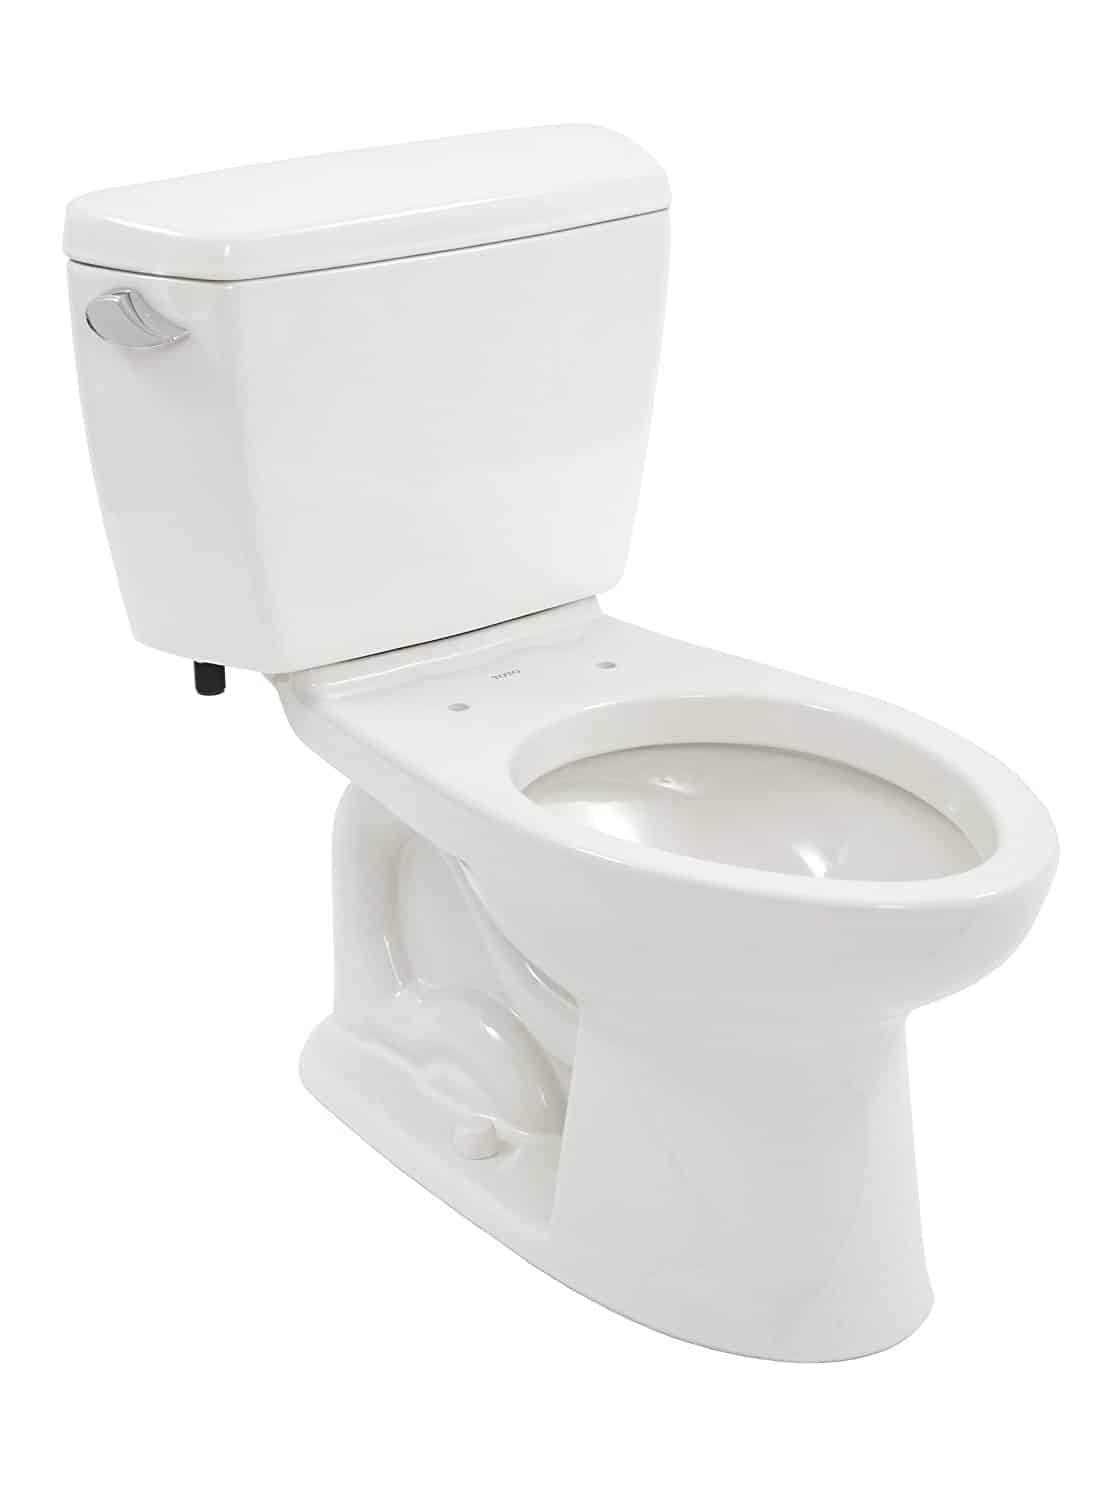 Best Toto Toilet- Reviews, Ratings & Buying Guide